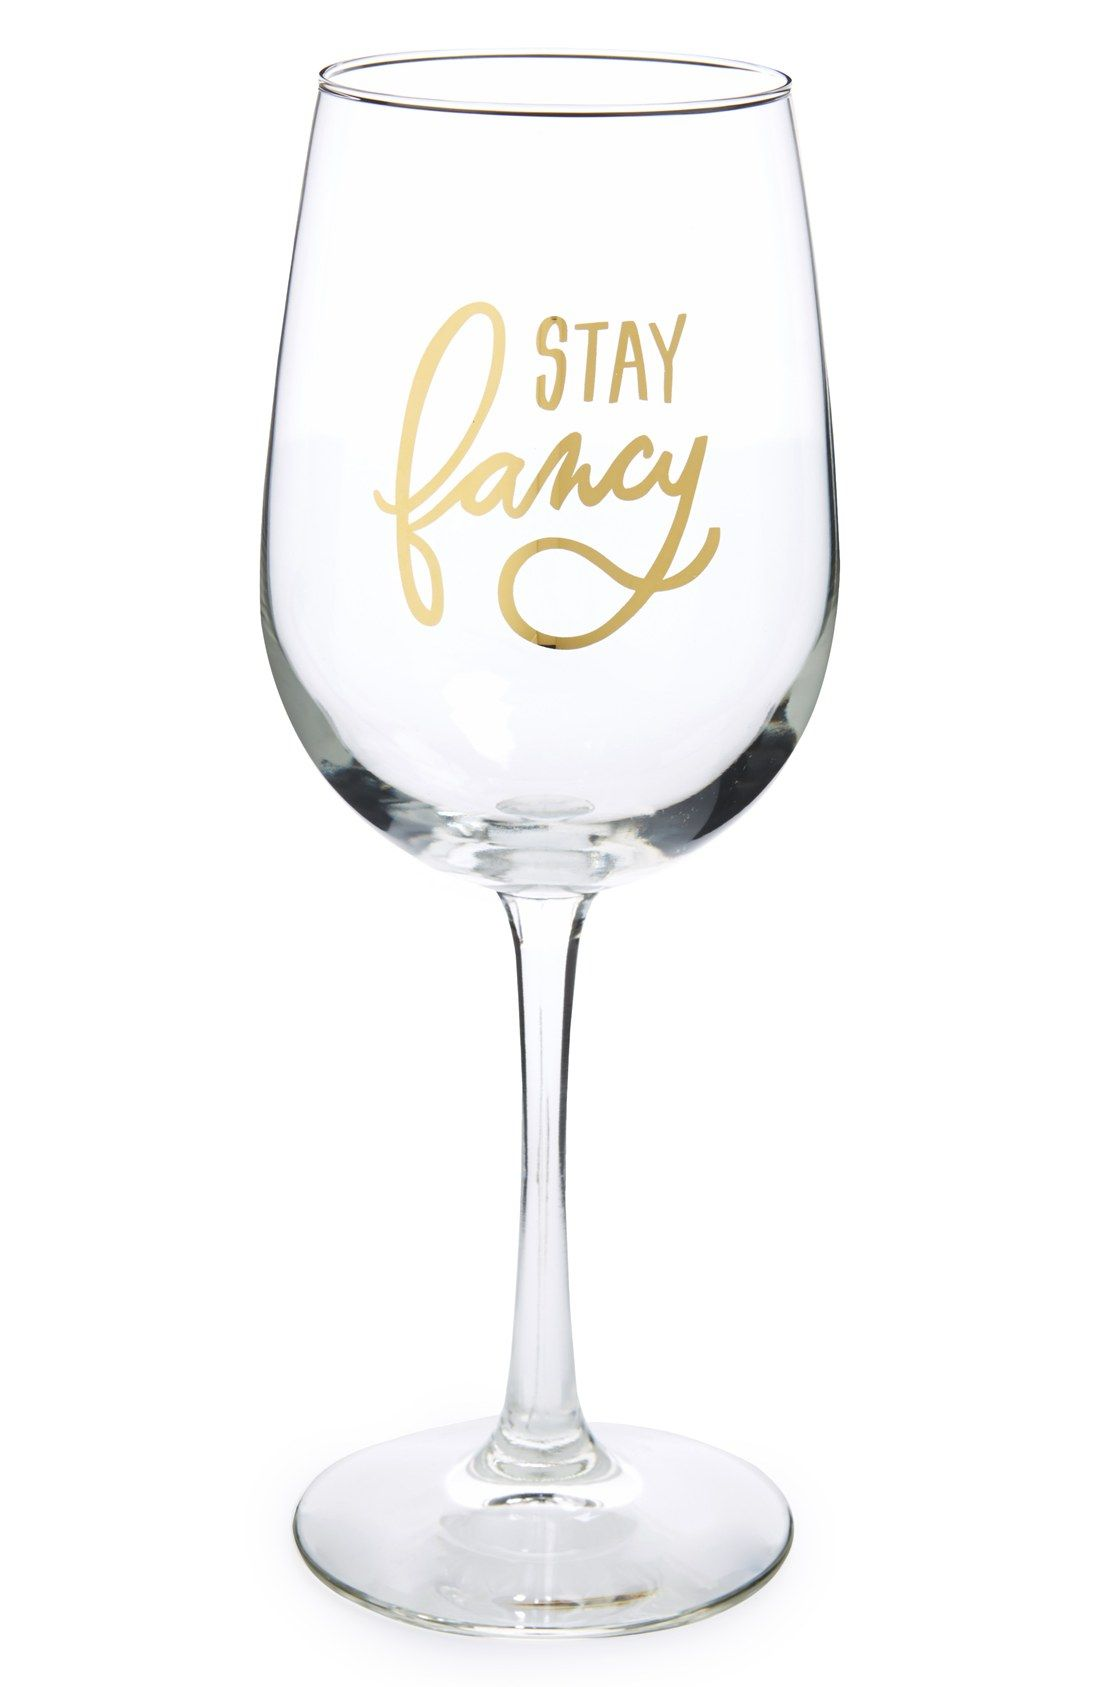 Fancy Wine Glass What 39s Not To Love About A Wine Glass That Says 39stay